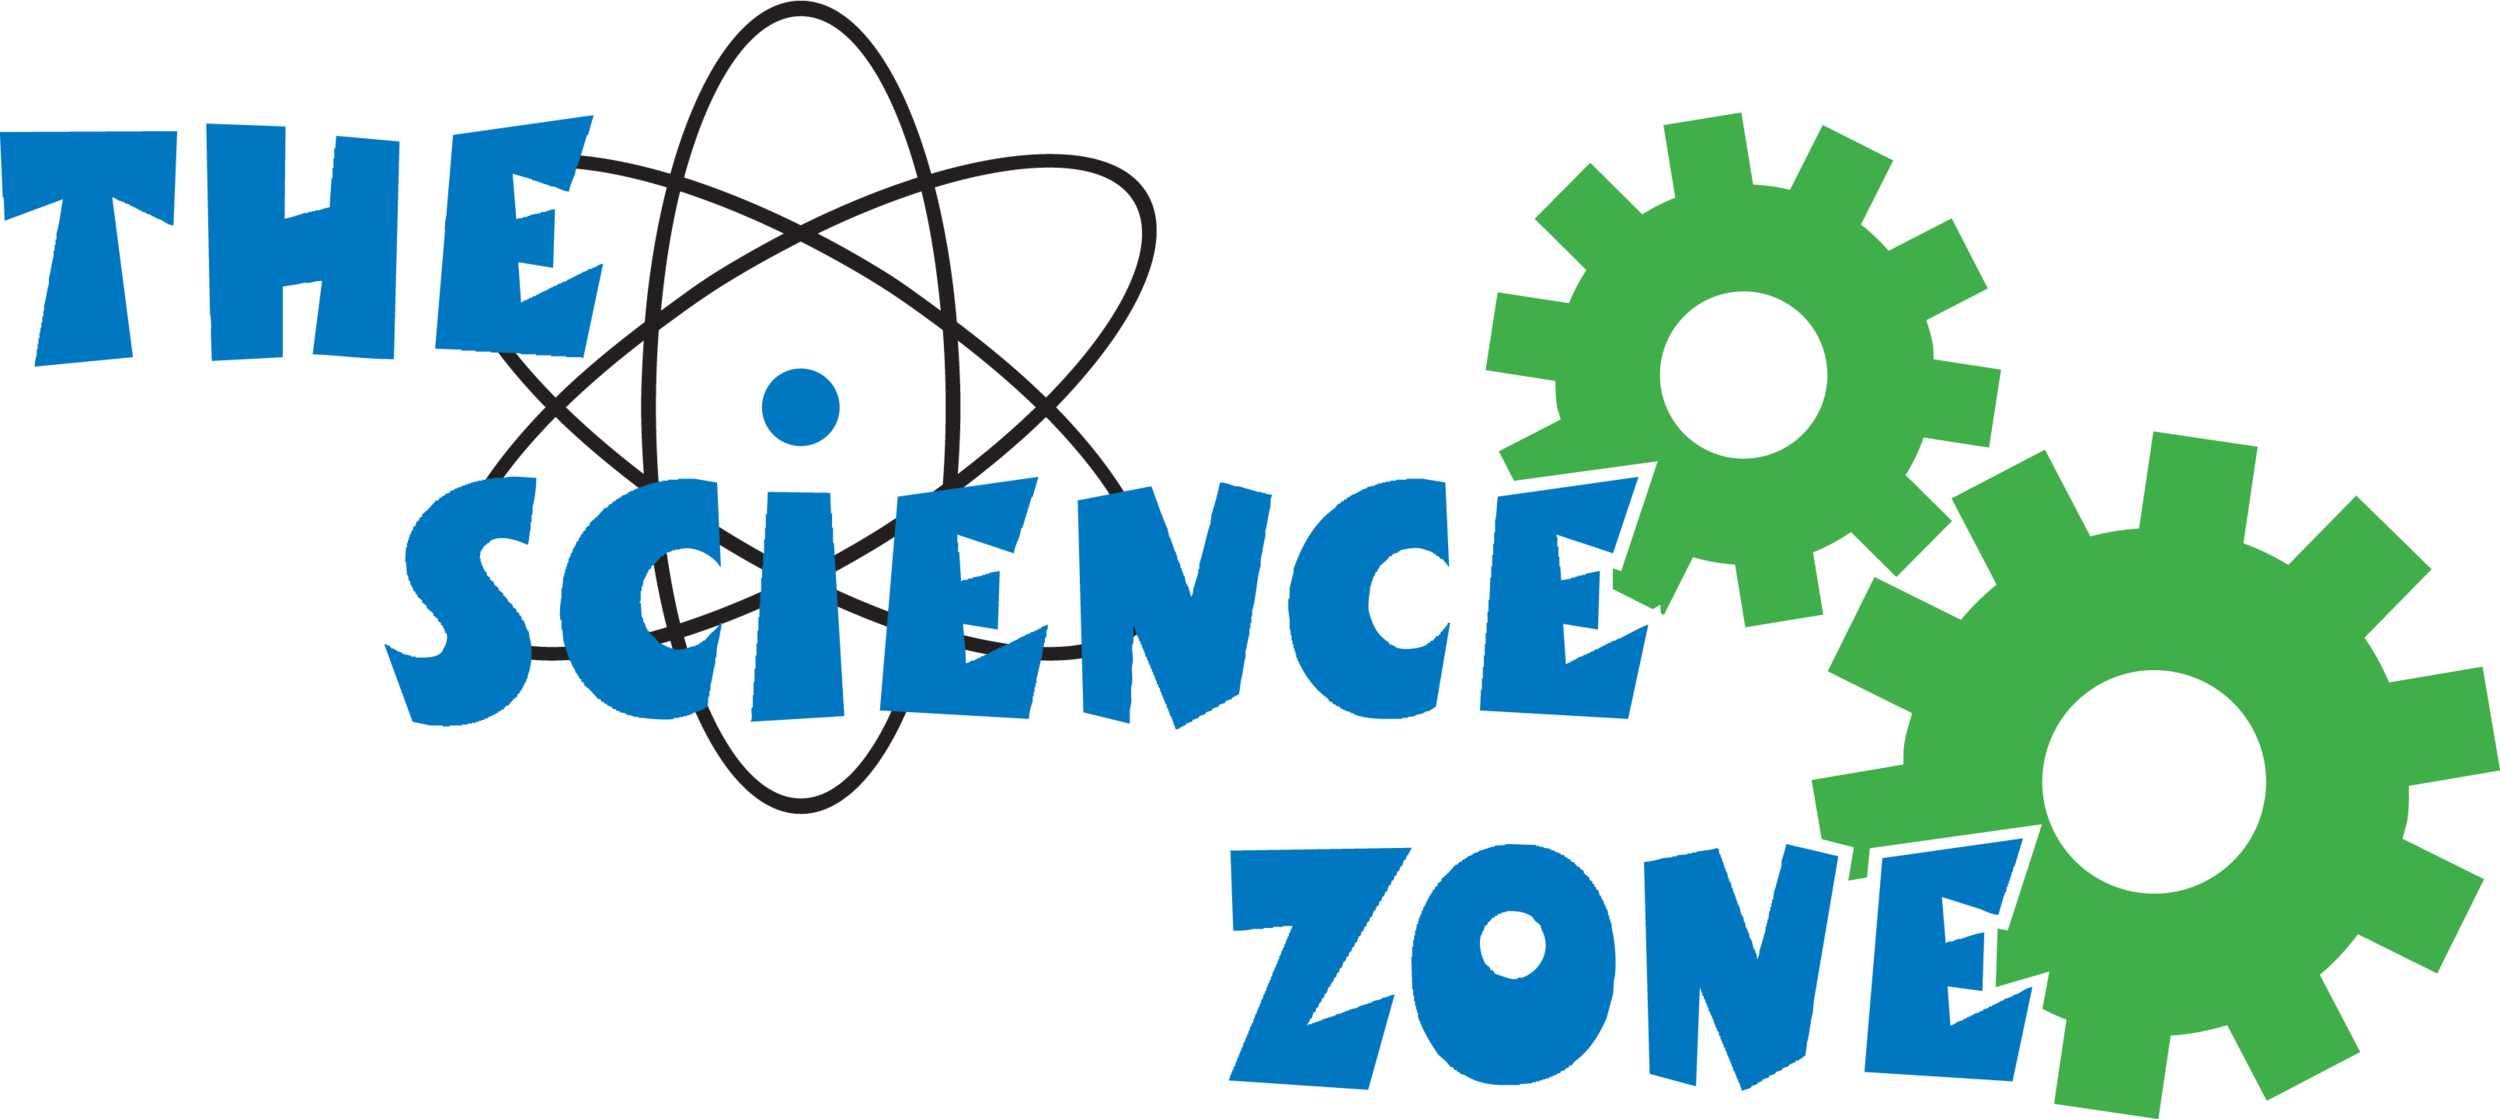 The Science Zone   111 W. Midwest Ave Casper, WY 82601 307-473-9663   www.thesciencezone.org